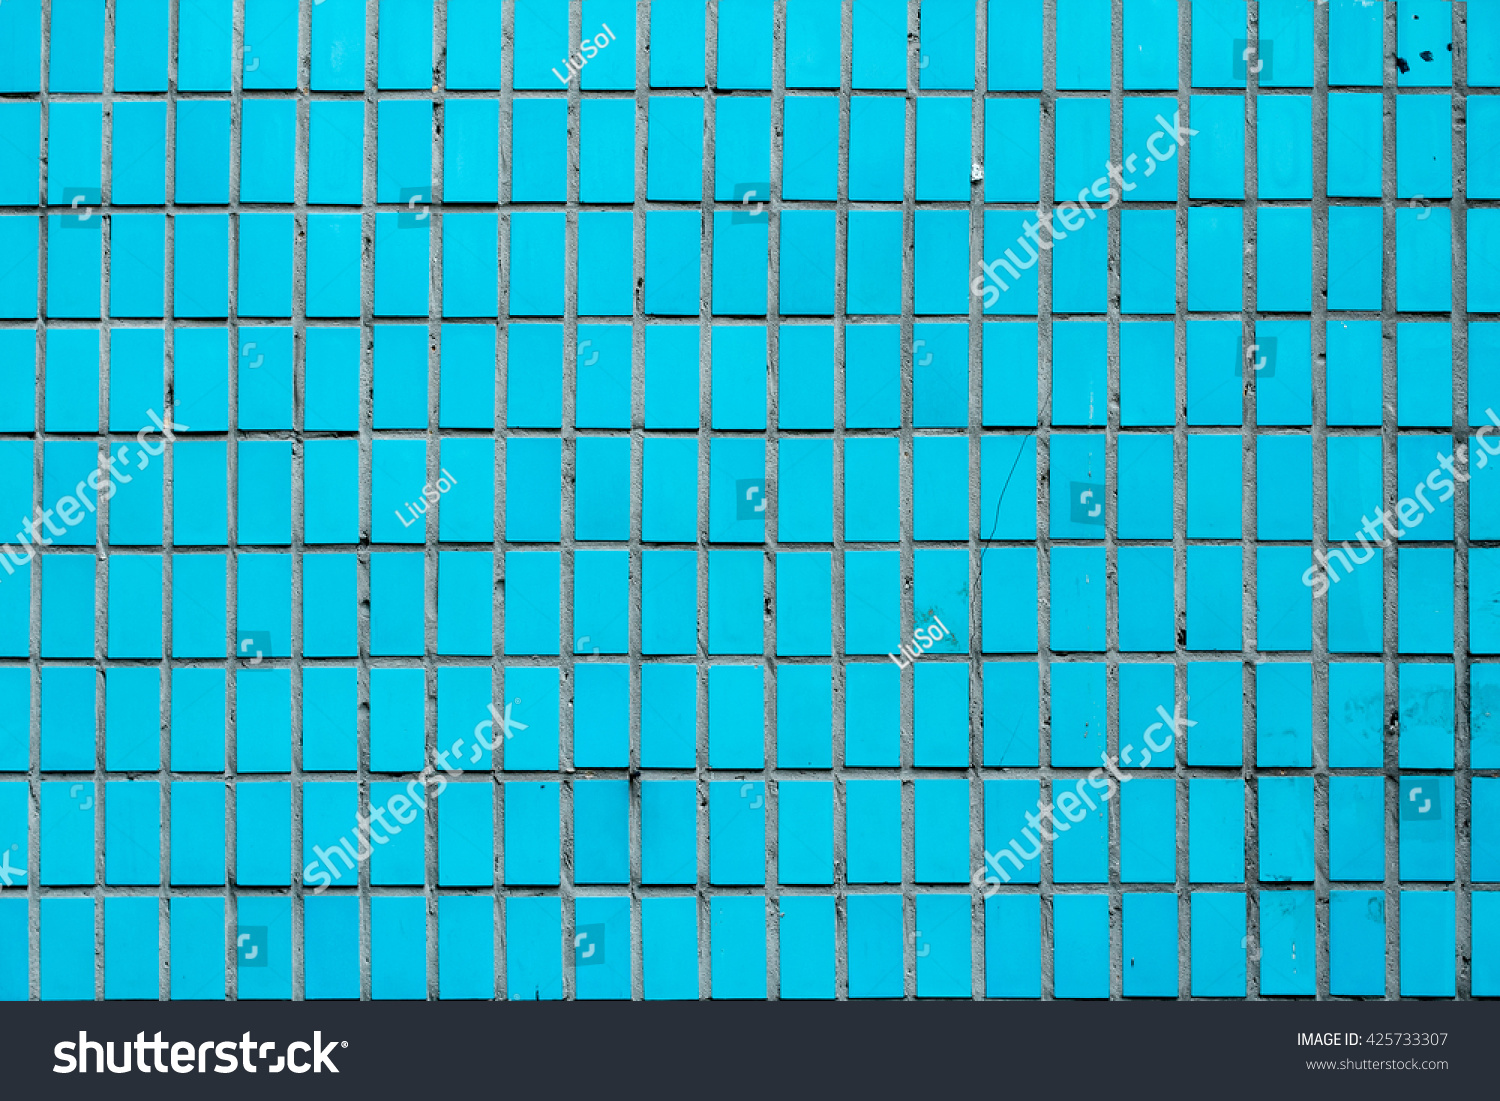 Vintage Old Blue Turquoise Tiles On Stock Photo 425733307 - Shutterstock